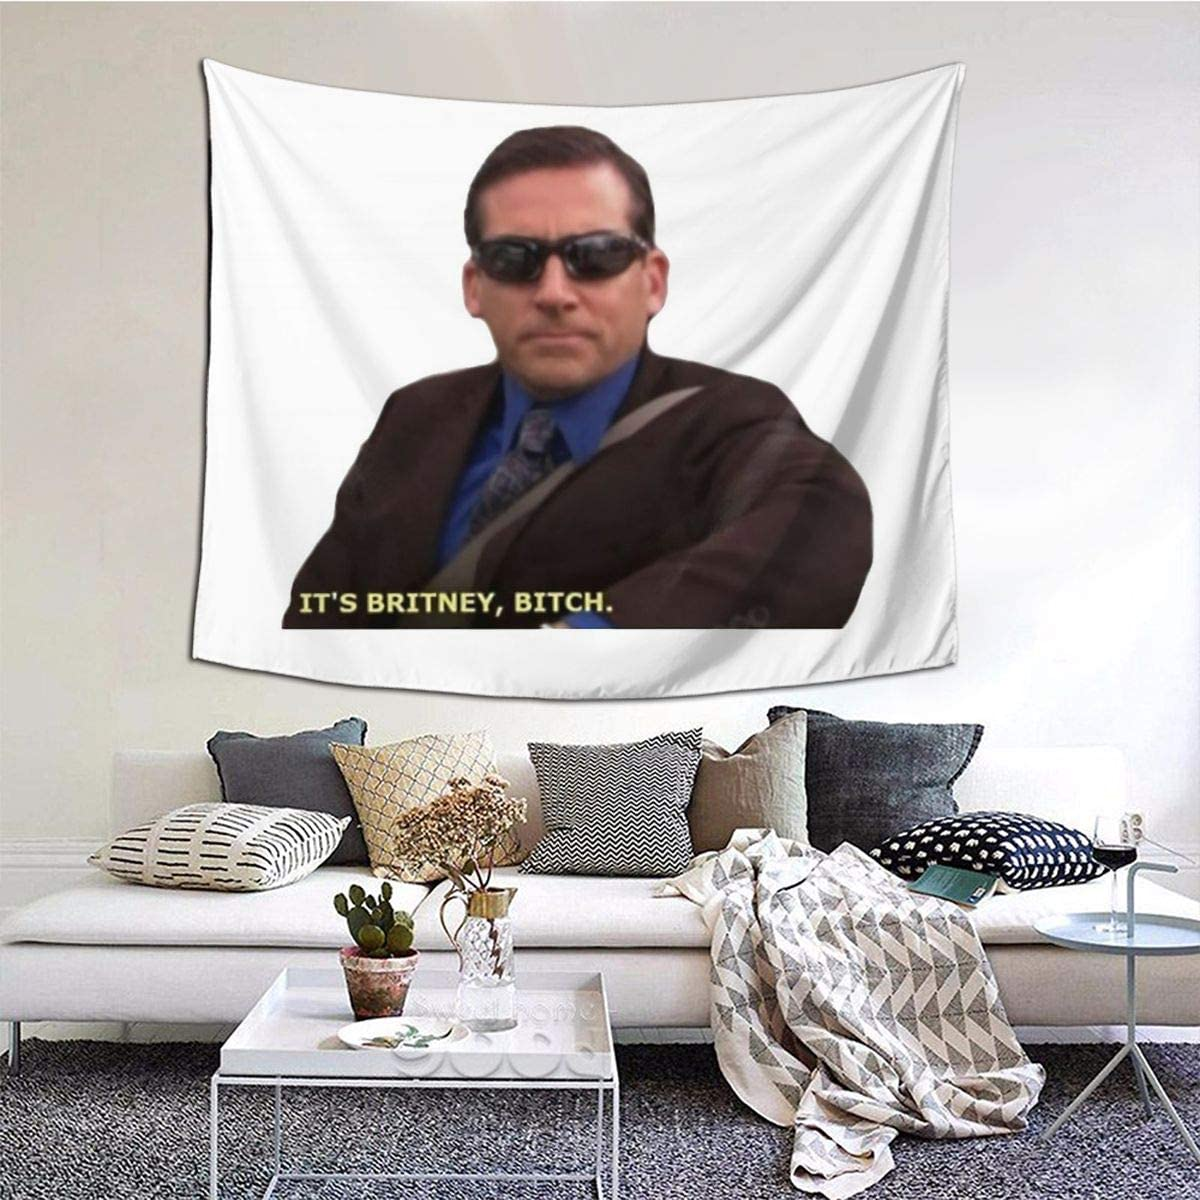 Gyaiaer Michael Scott Meme Funny Tapestry Boutique Wall Hanging Tapestry Vintage Tapestry Wall Tapestry Micro Fiber Peach Home Decor 6051inch